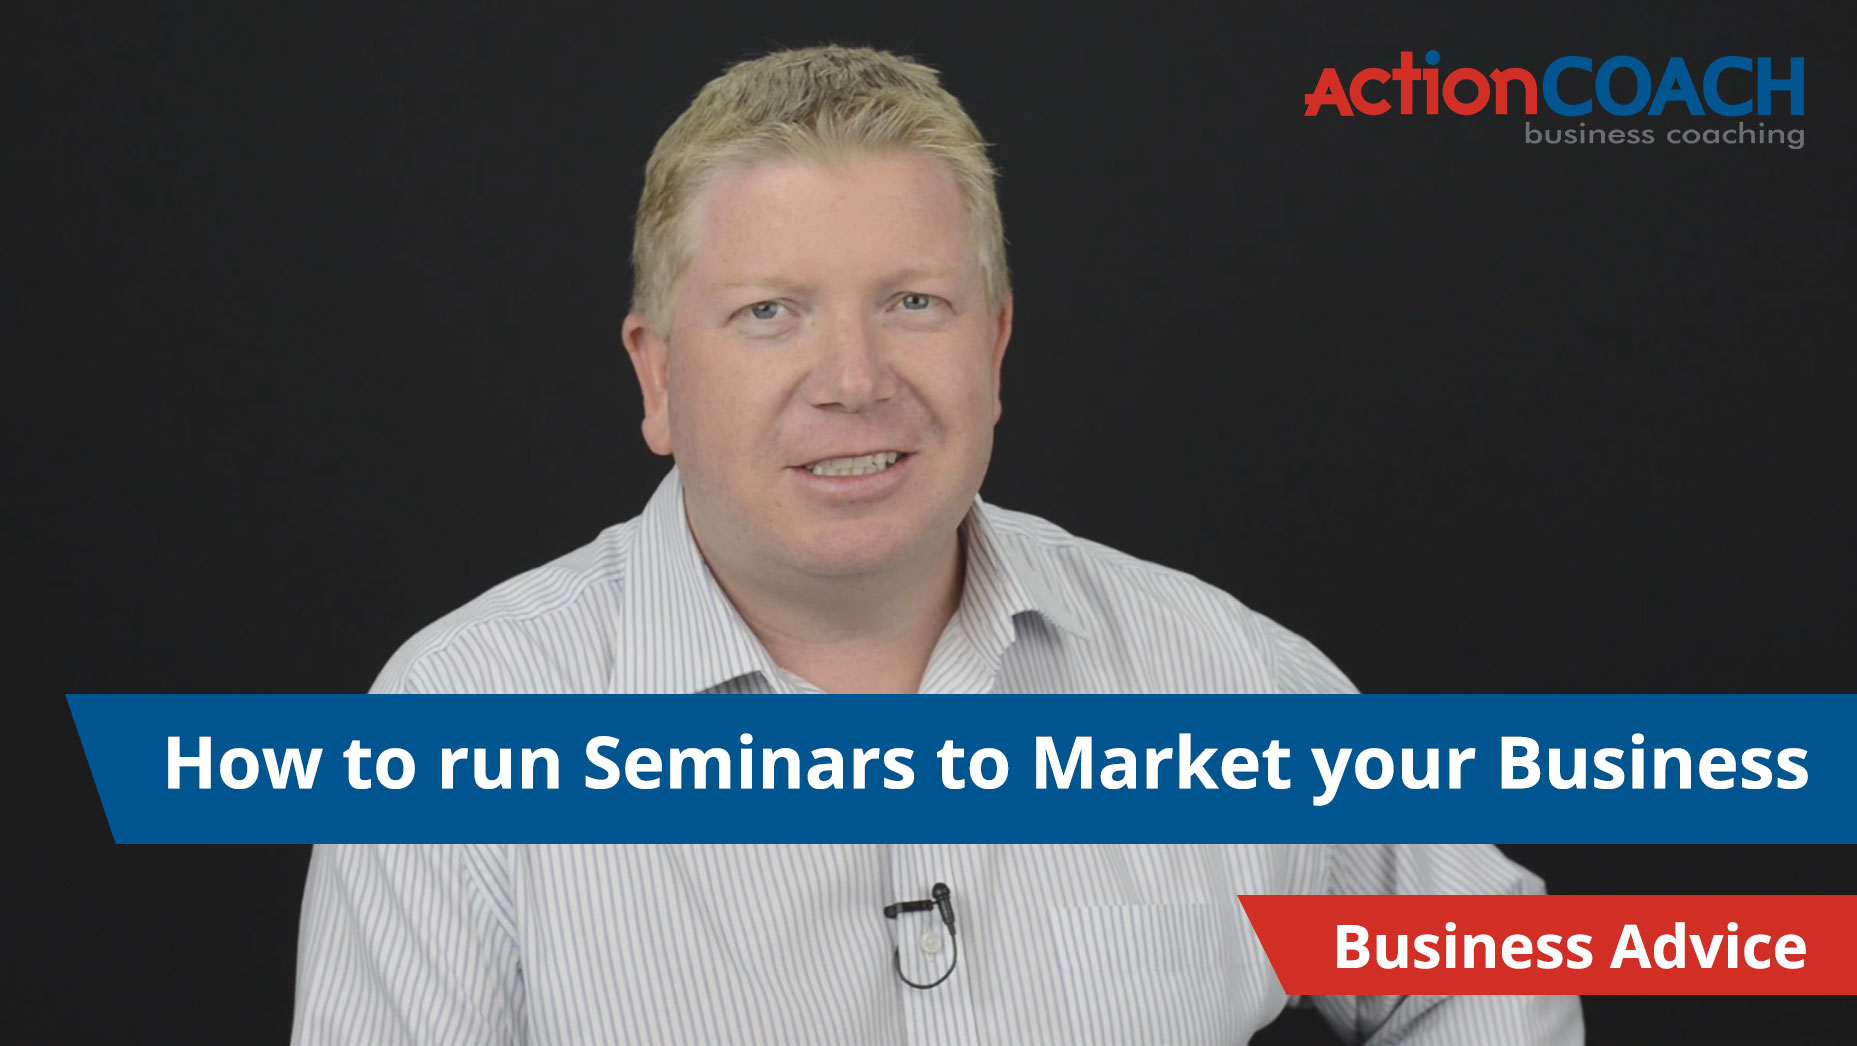 How to run a seminar to market your business